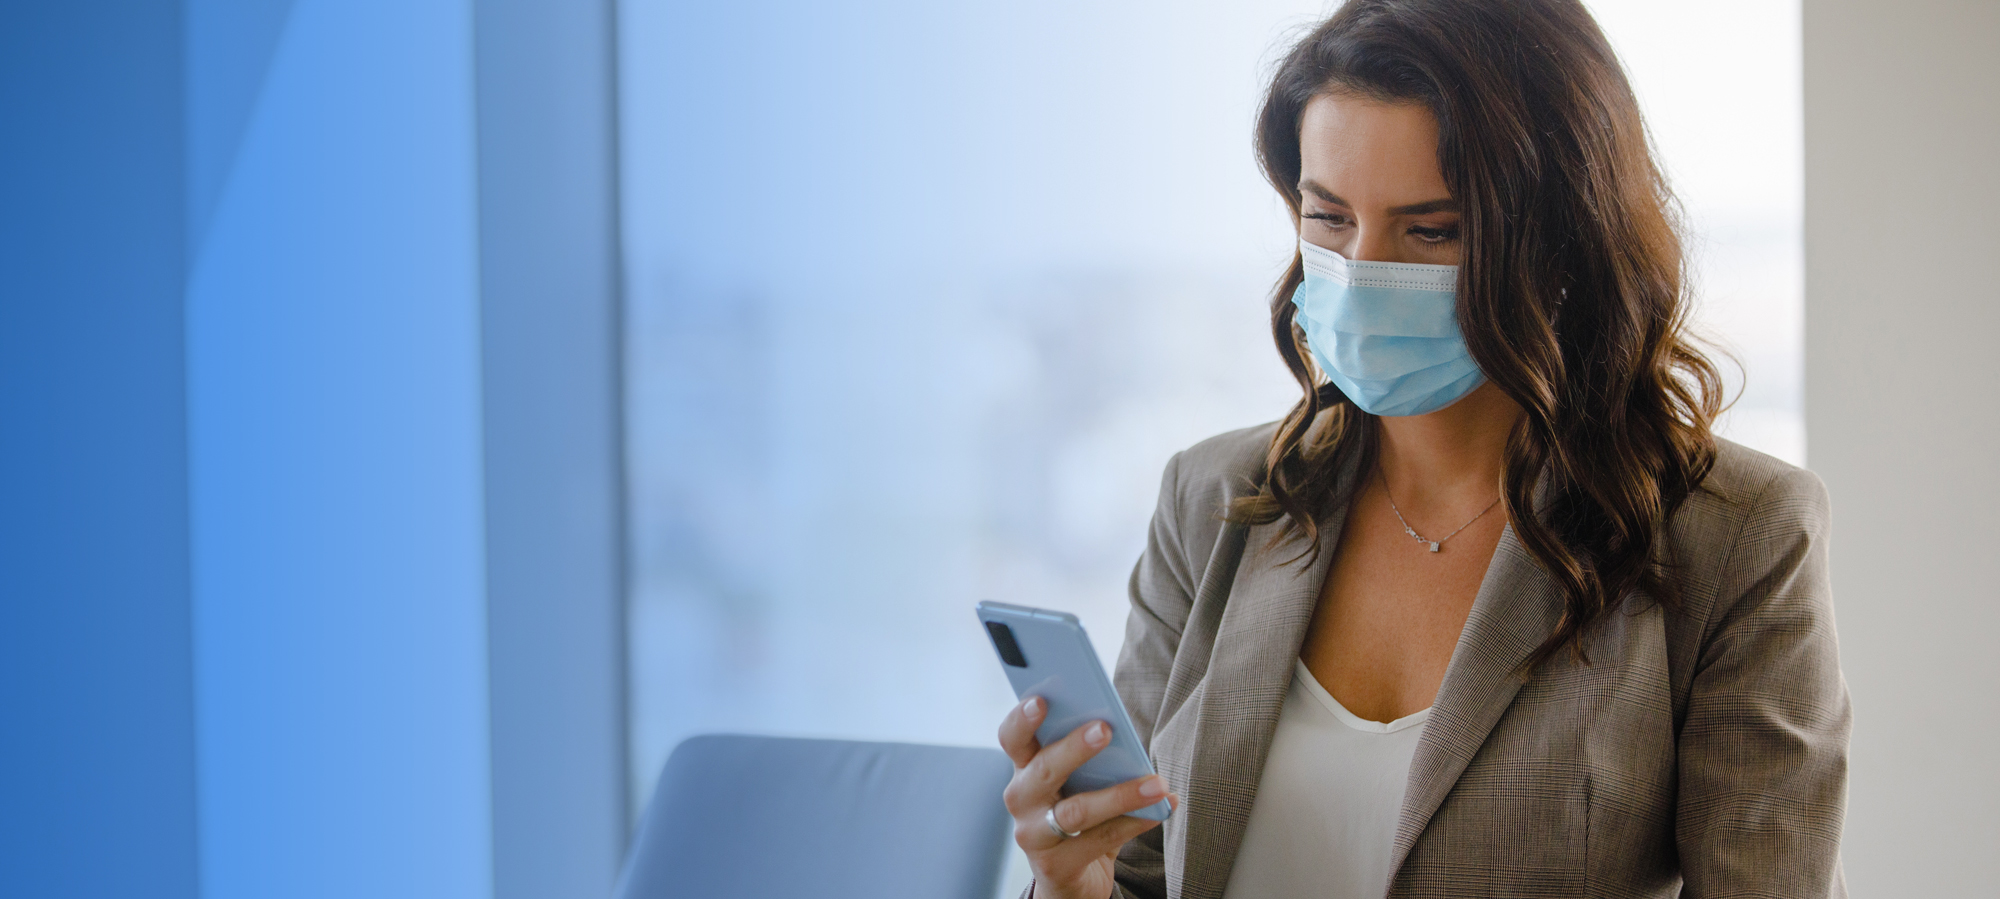 Science Update: 5 Tips to Protect Yourself from COVID-19